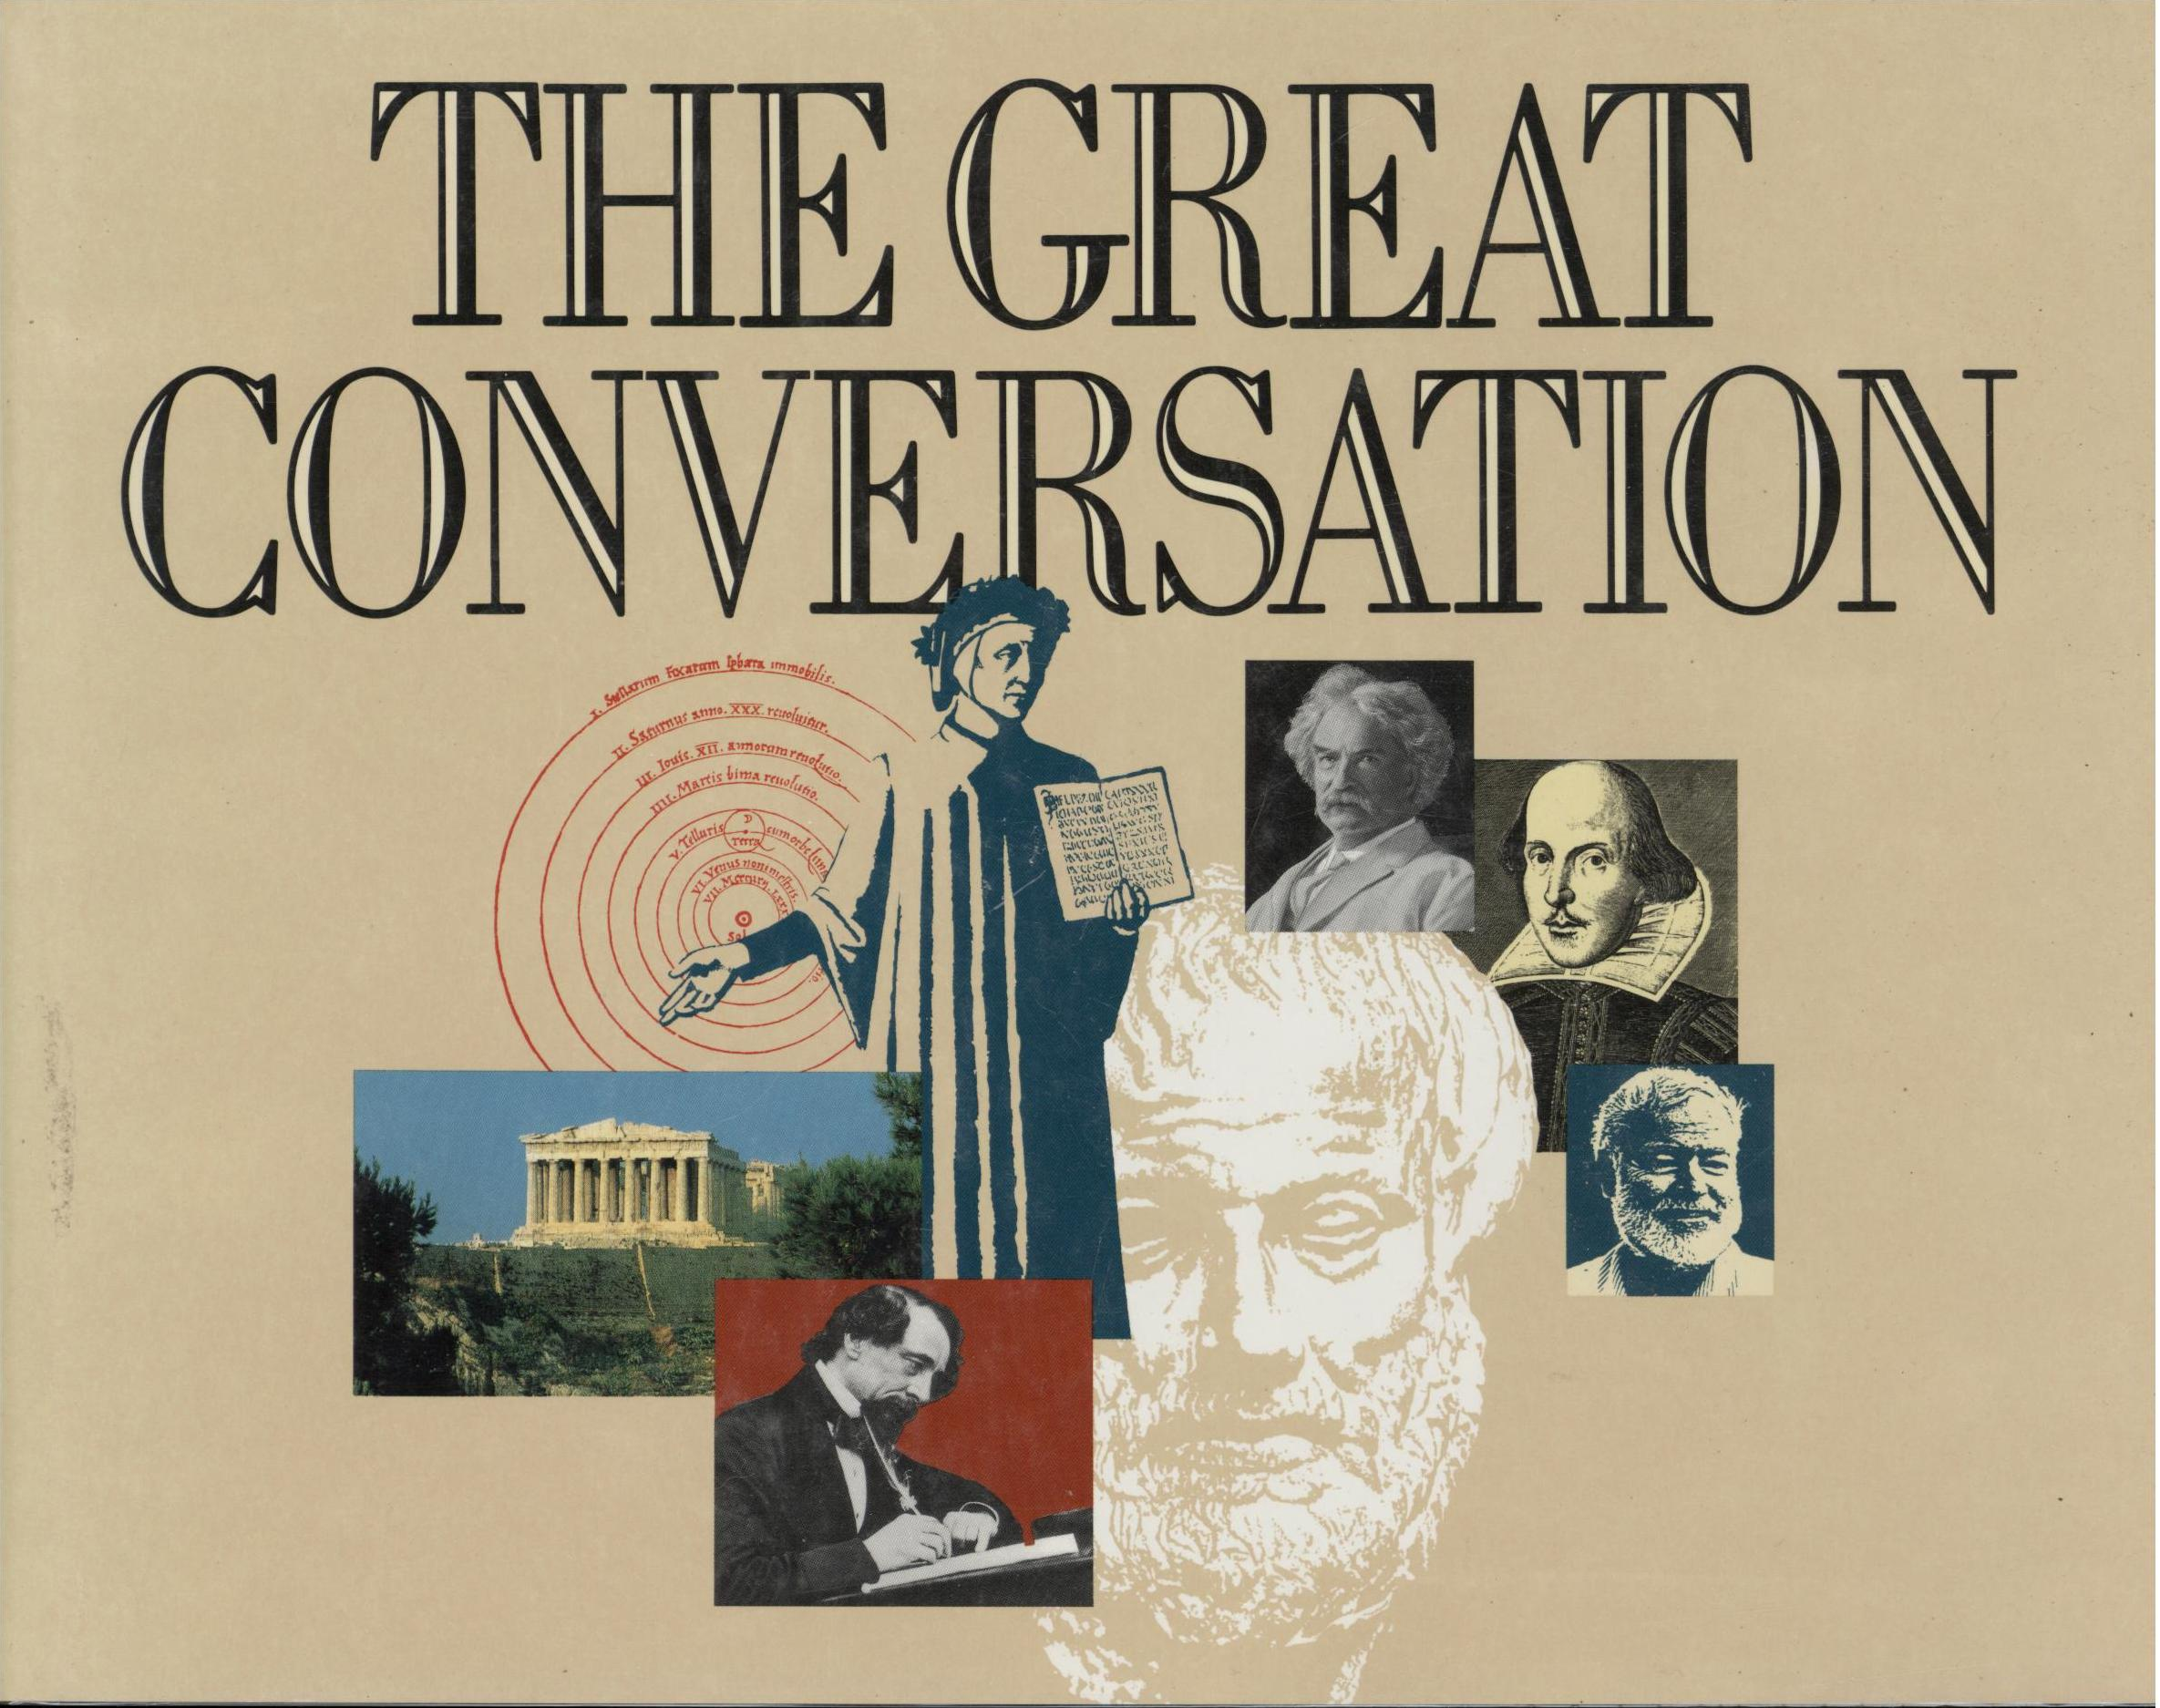 Image for Bookseller Image The Great Conversation: A Reader's Guide To Great Books Of The Western World (Hardcover)